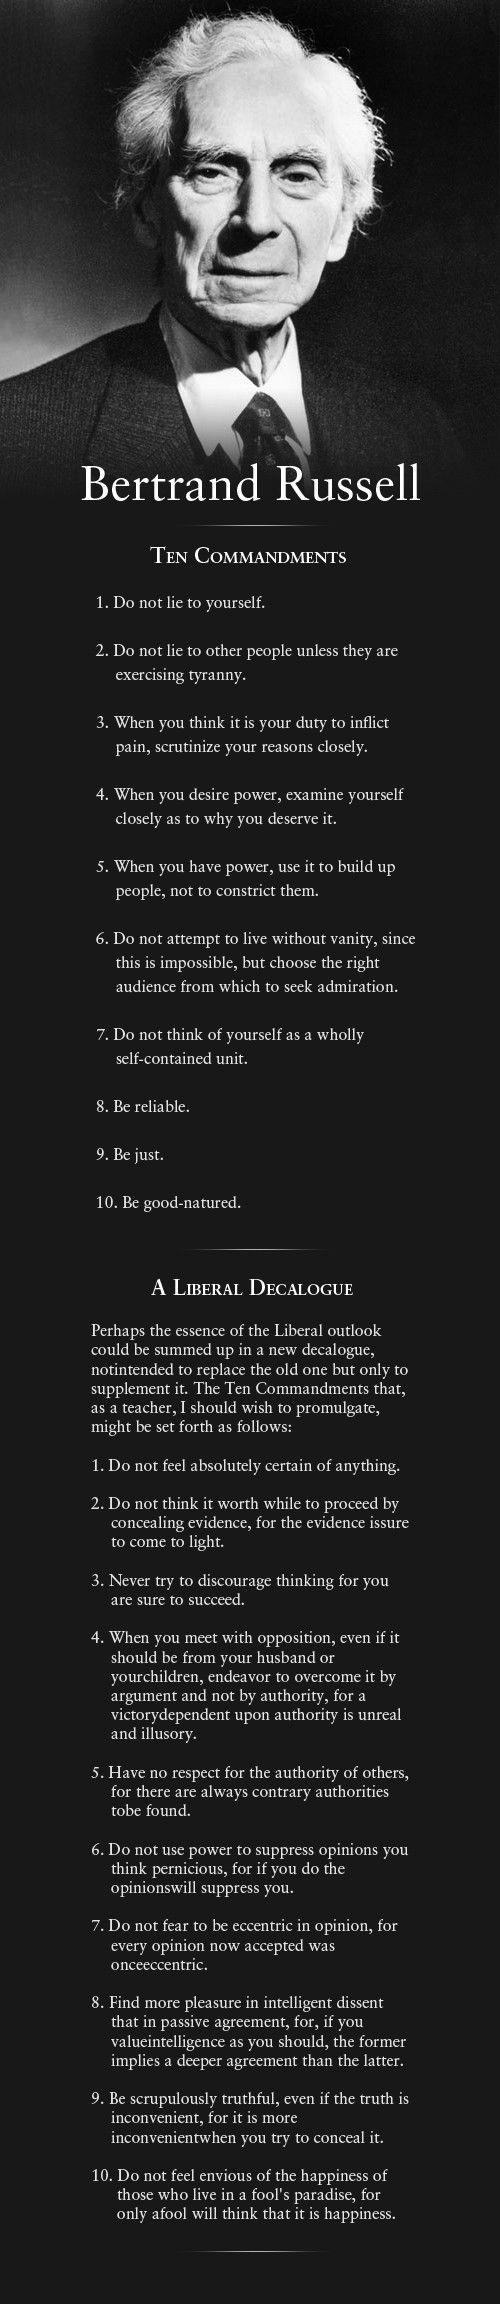 10 commandments for living in a healthy democracy.